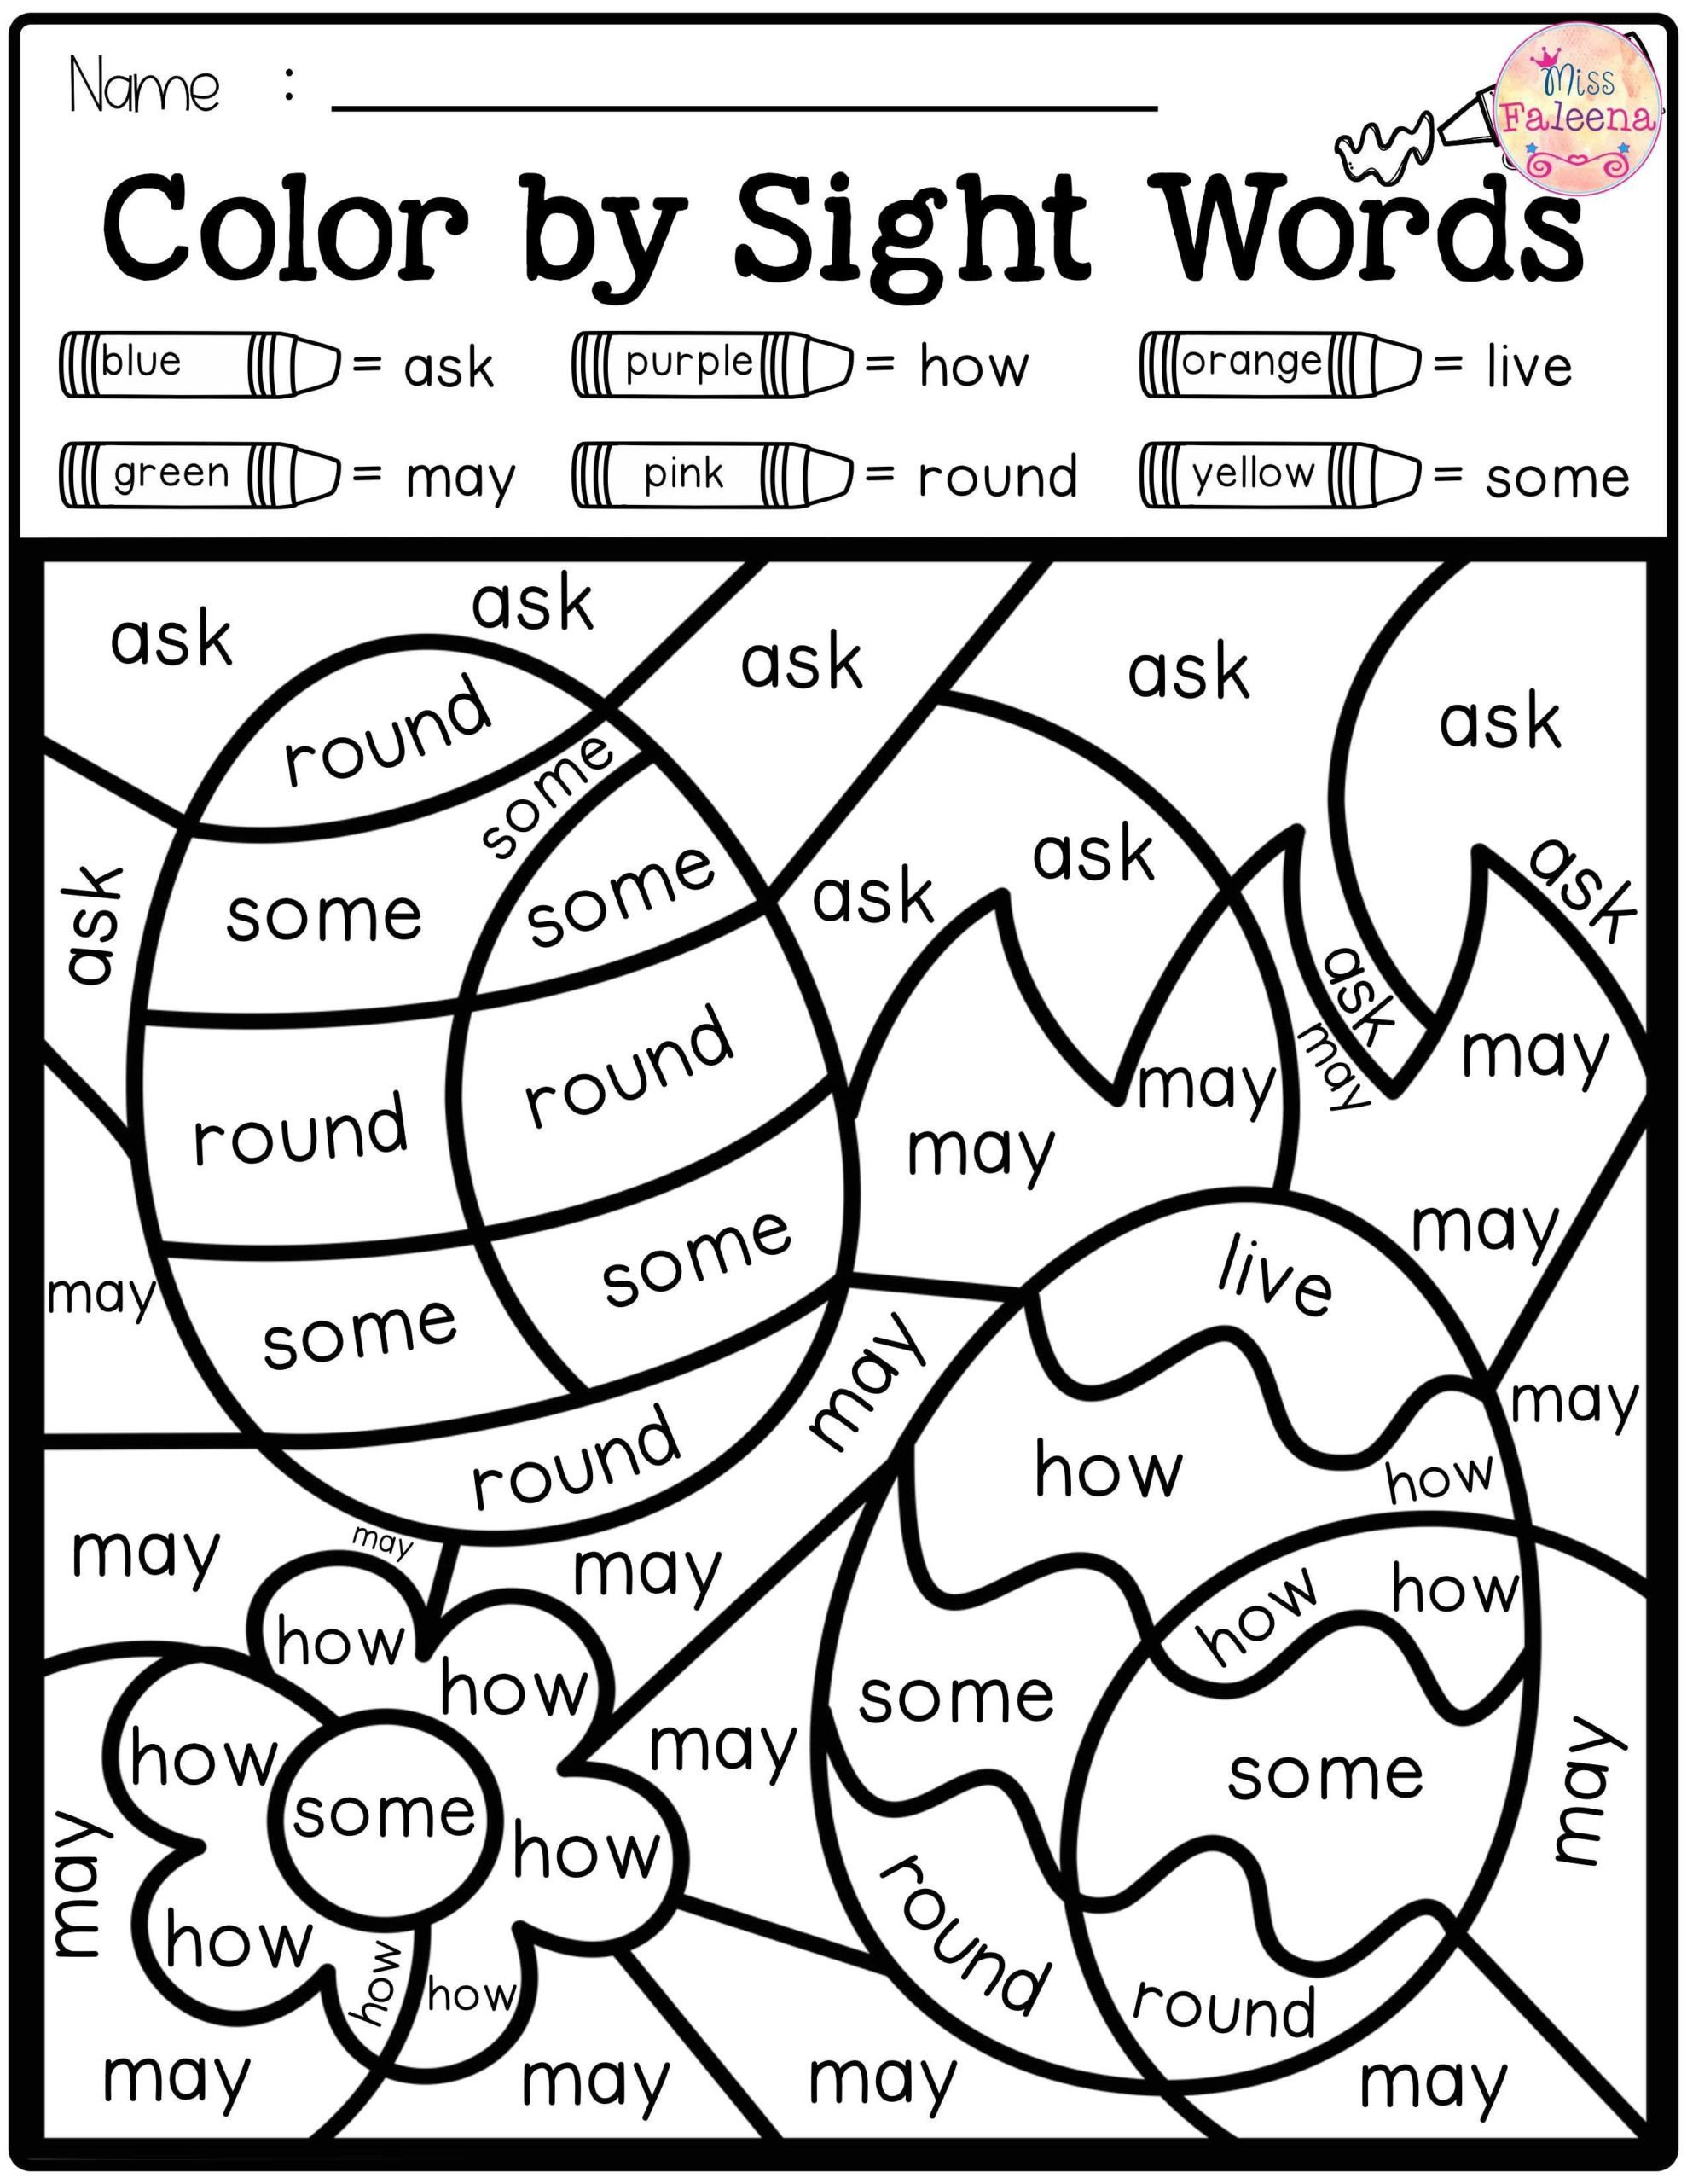 Color by Word Worksheets astonishing Sight Word Coloring Pages – Stephenbenedictdyson